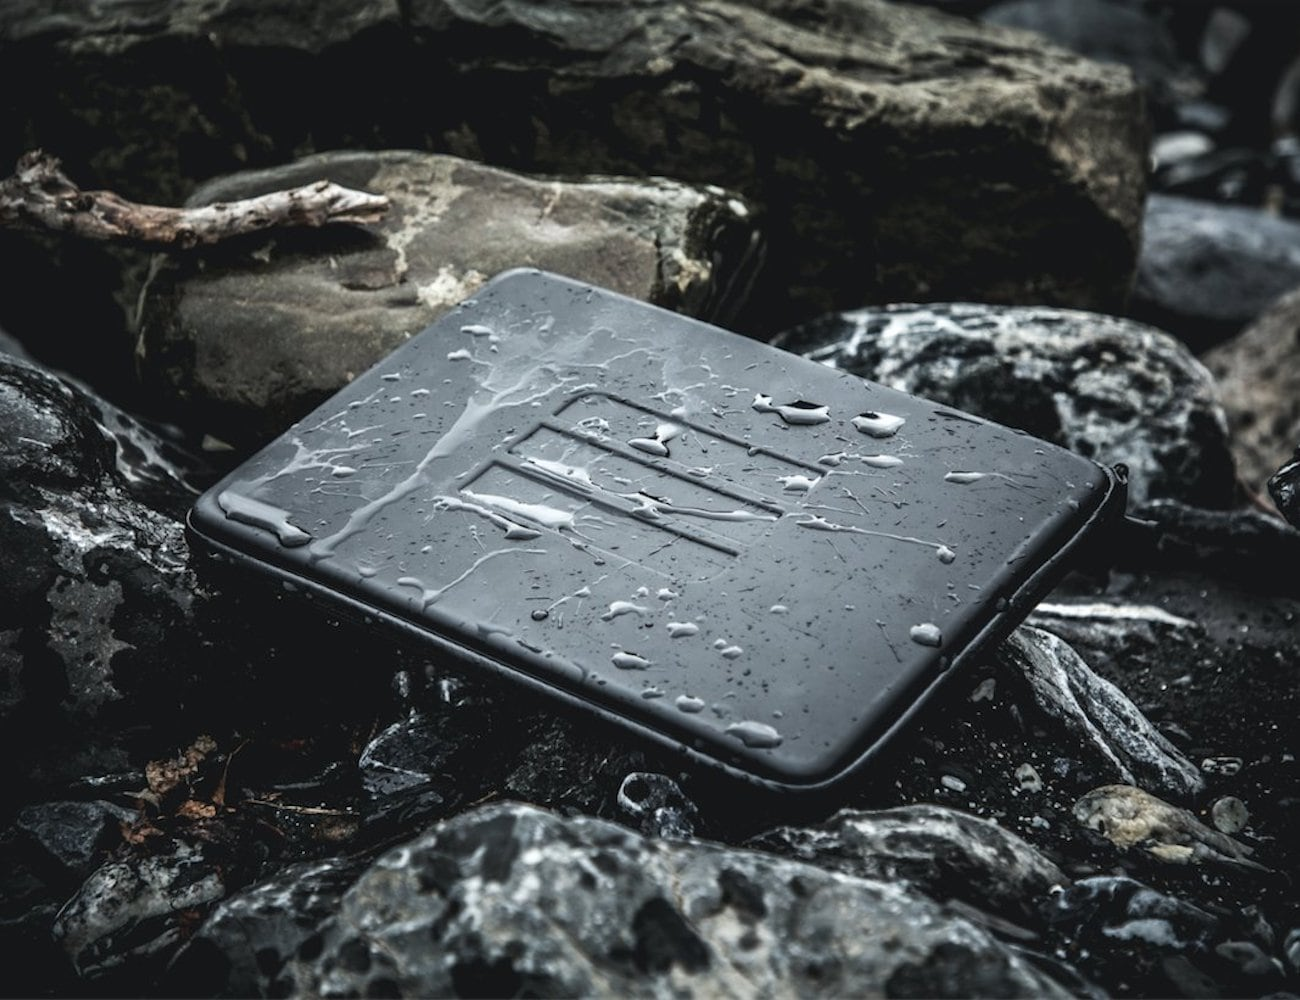 Subtech Sports Drycase Outdoor Laptop Case protects your laptop on adventures